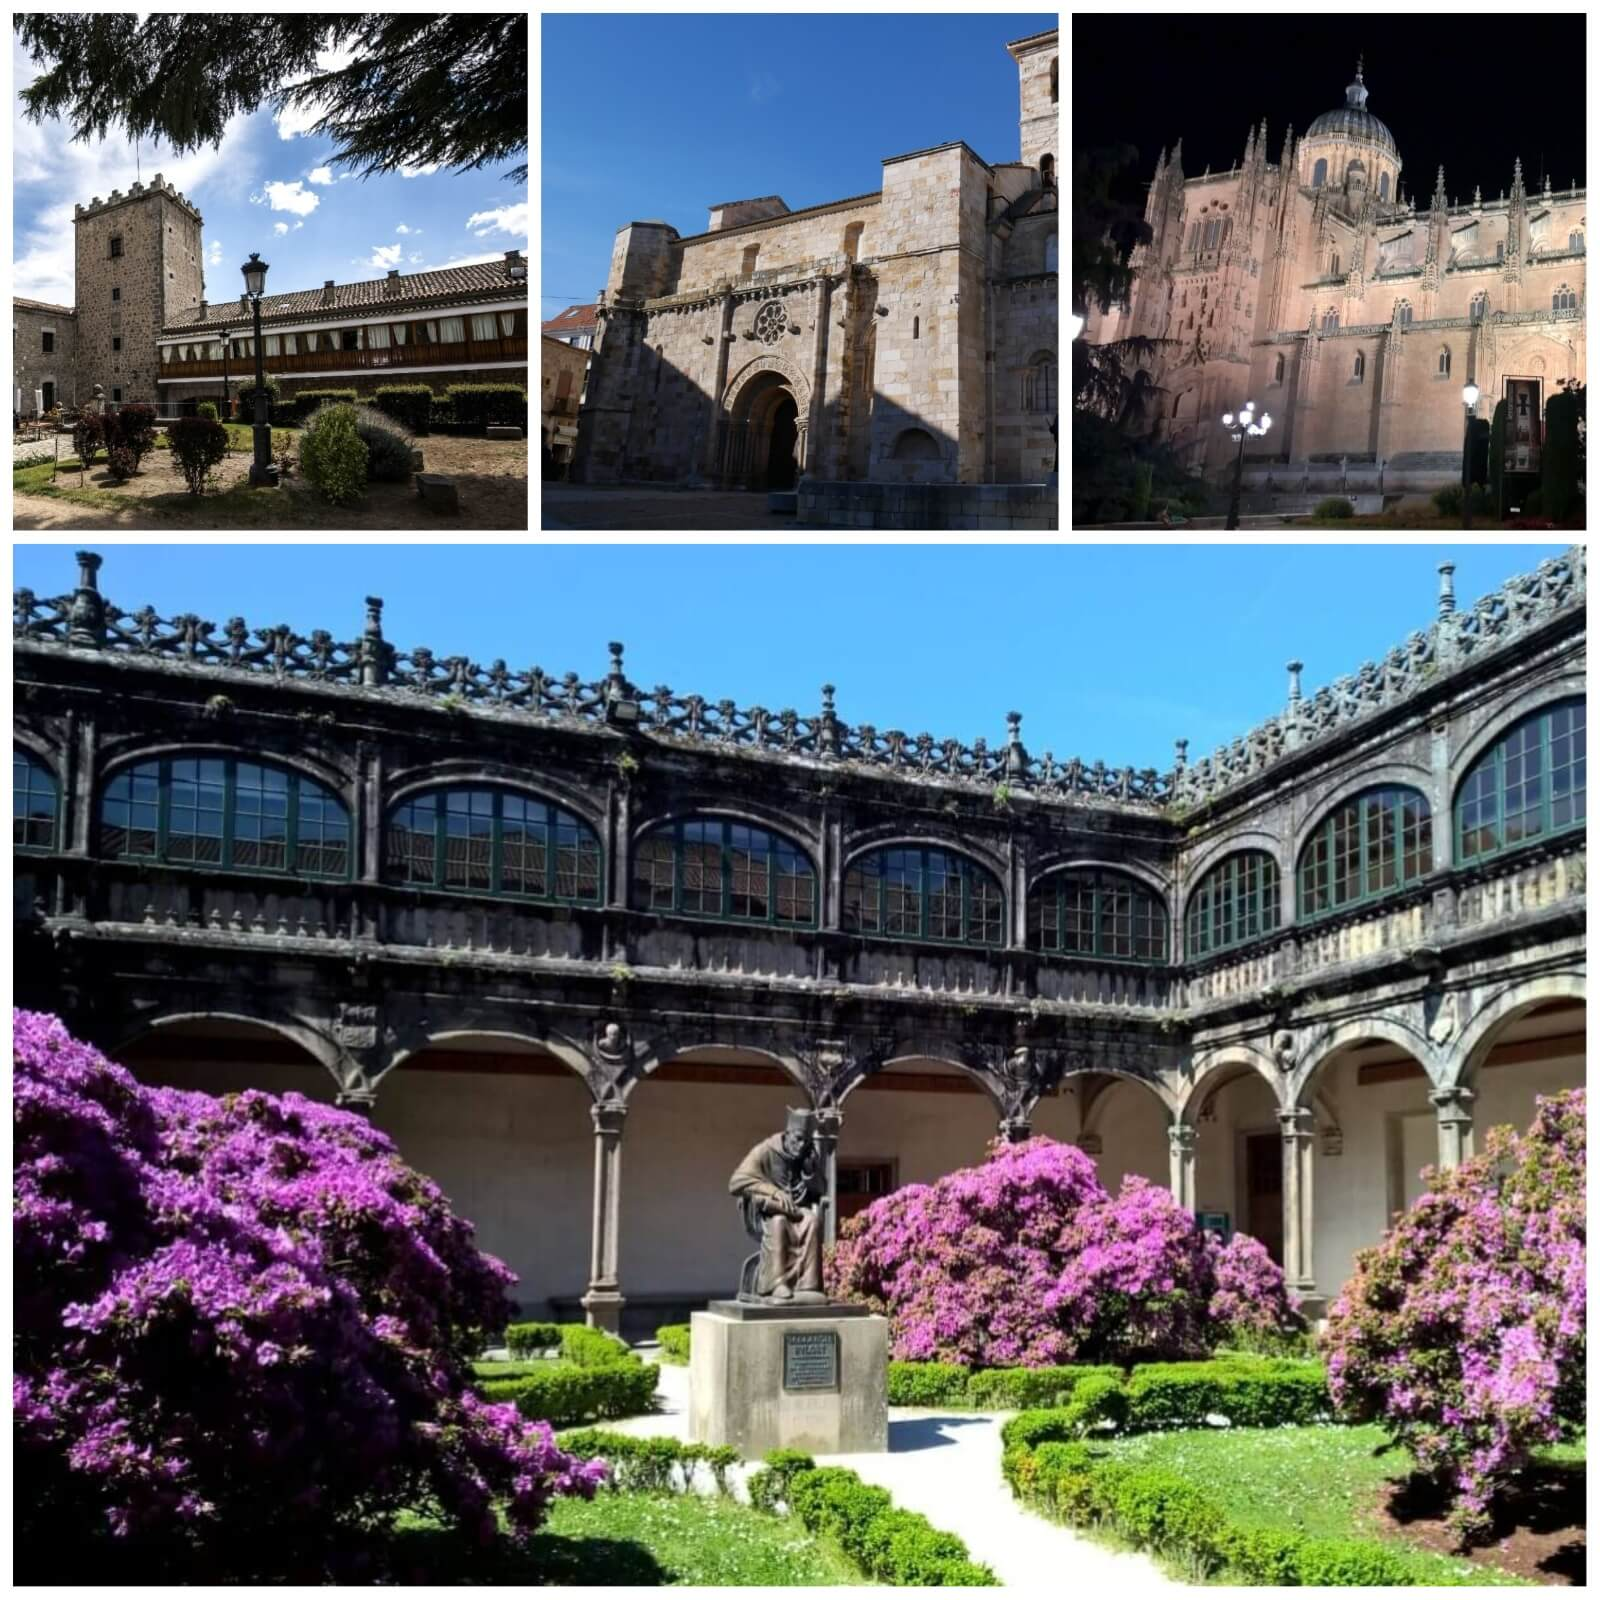 9 Ideas for Self Drive Tours in Spain and Portugal - 4. Exploring UNESCO Heritage Cities of Salamanca, Segovia & Avila